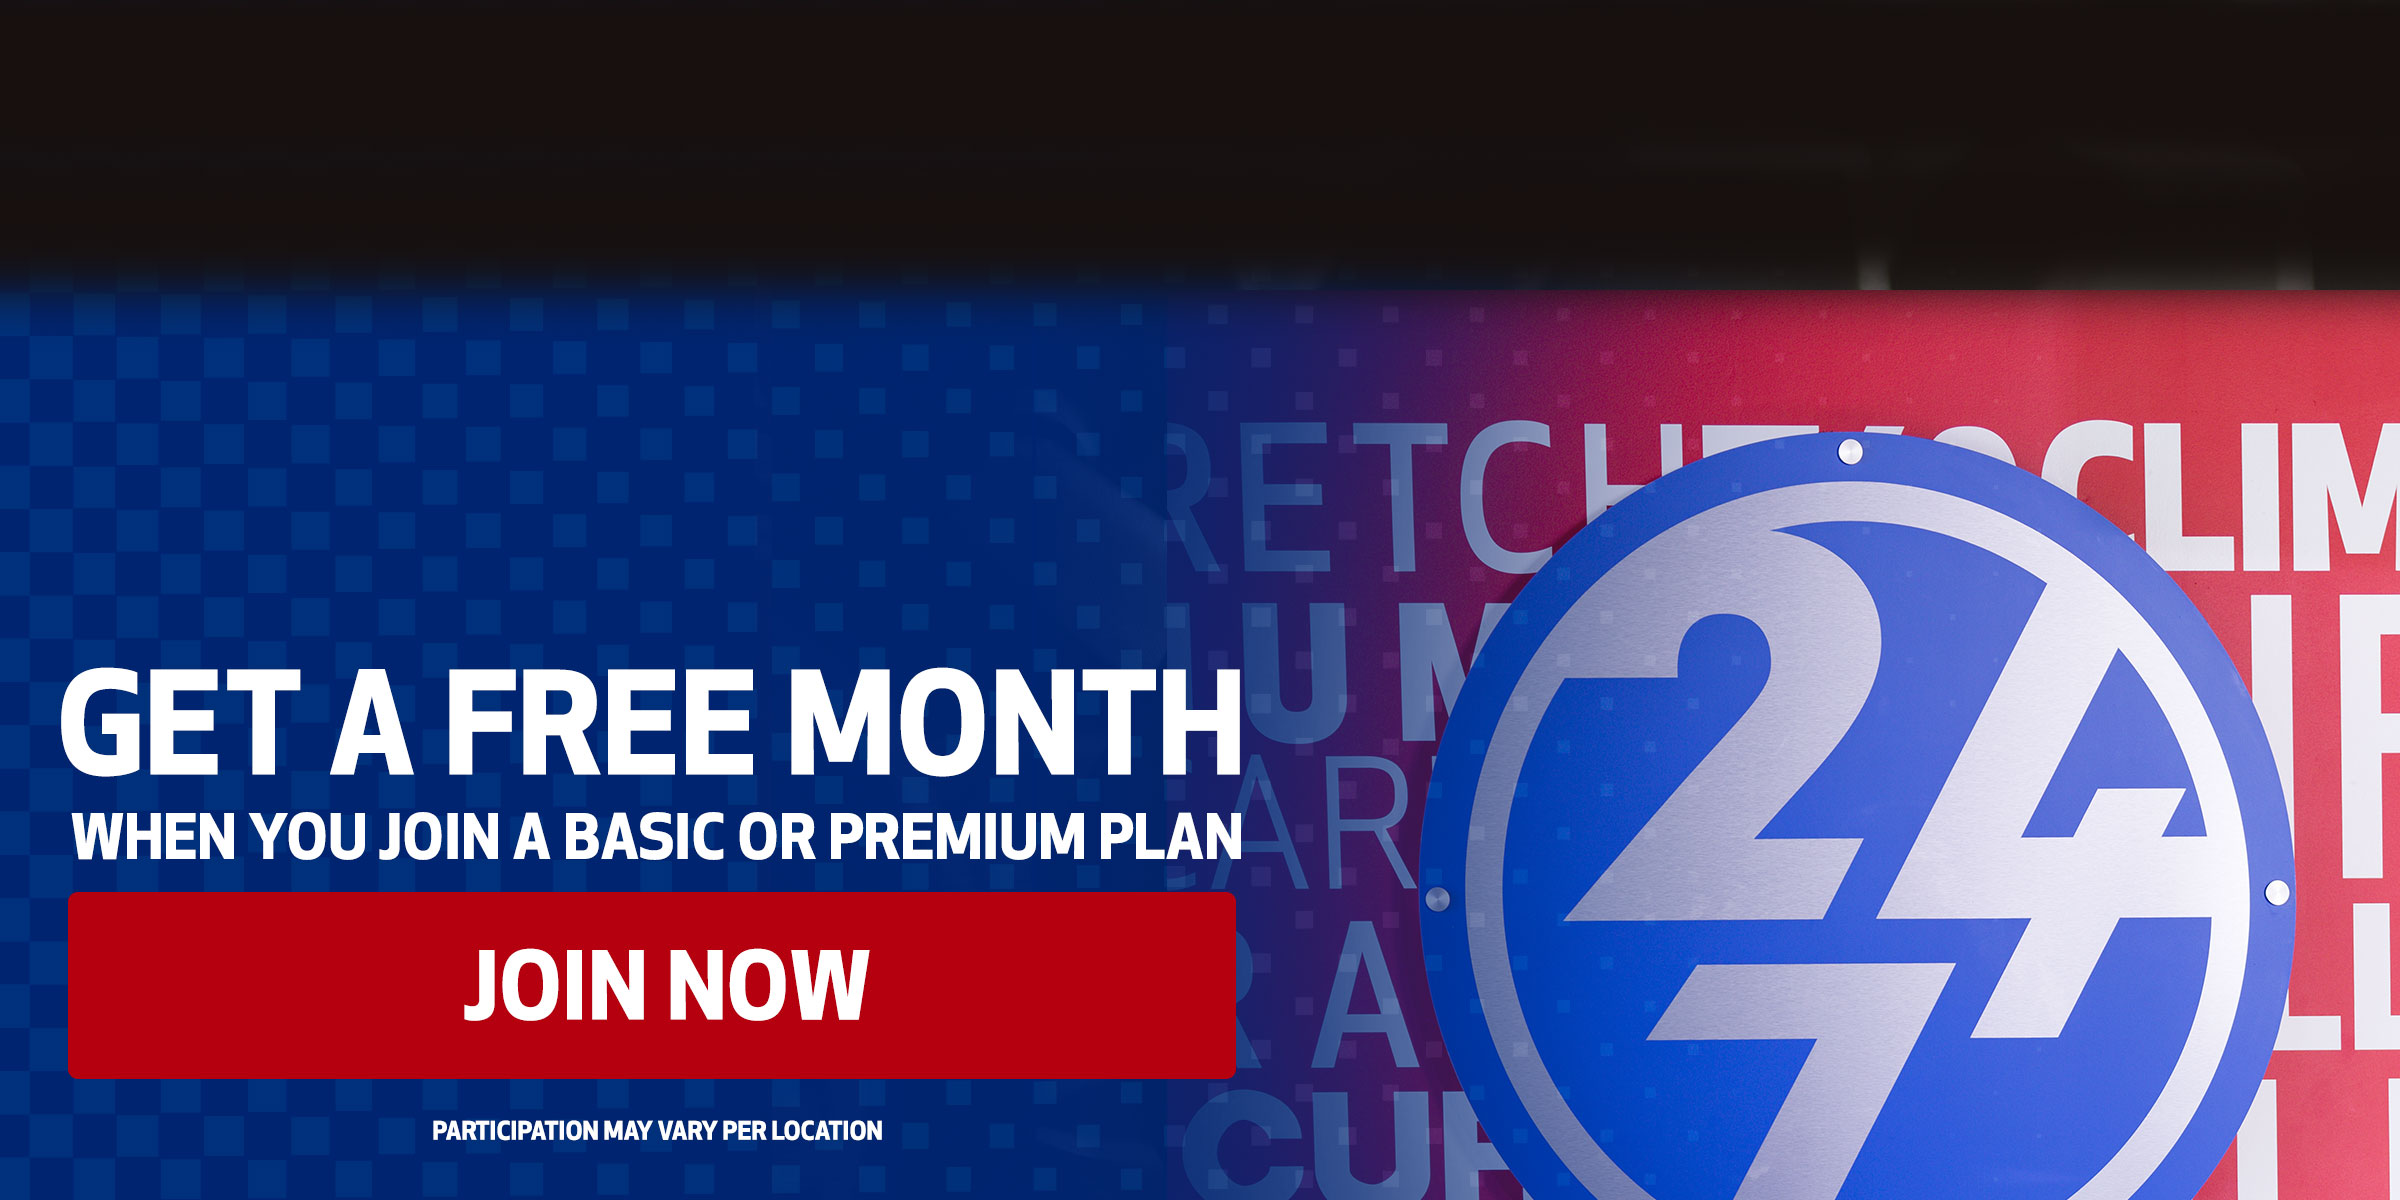 Get a FREE Month when you join a Basic or Premium Plan